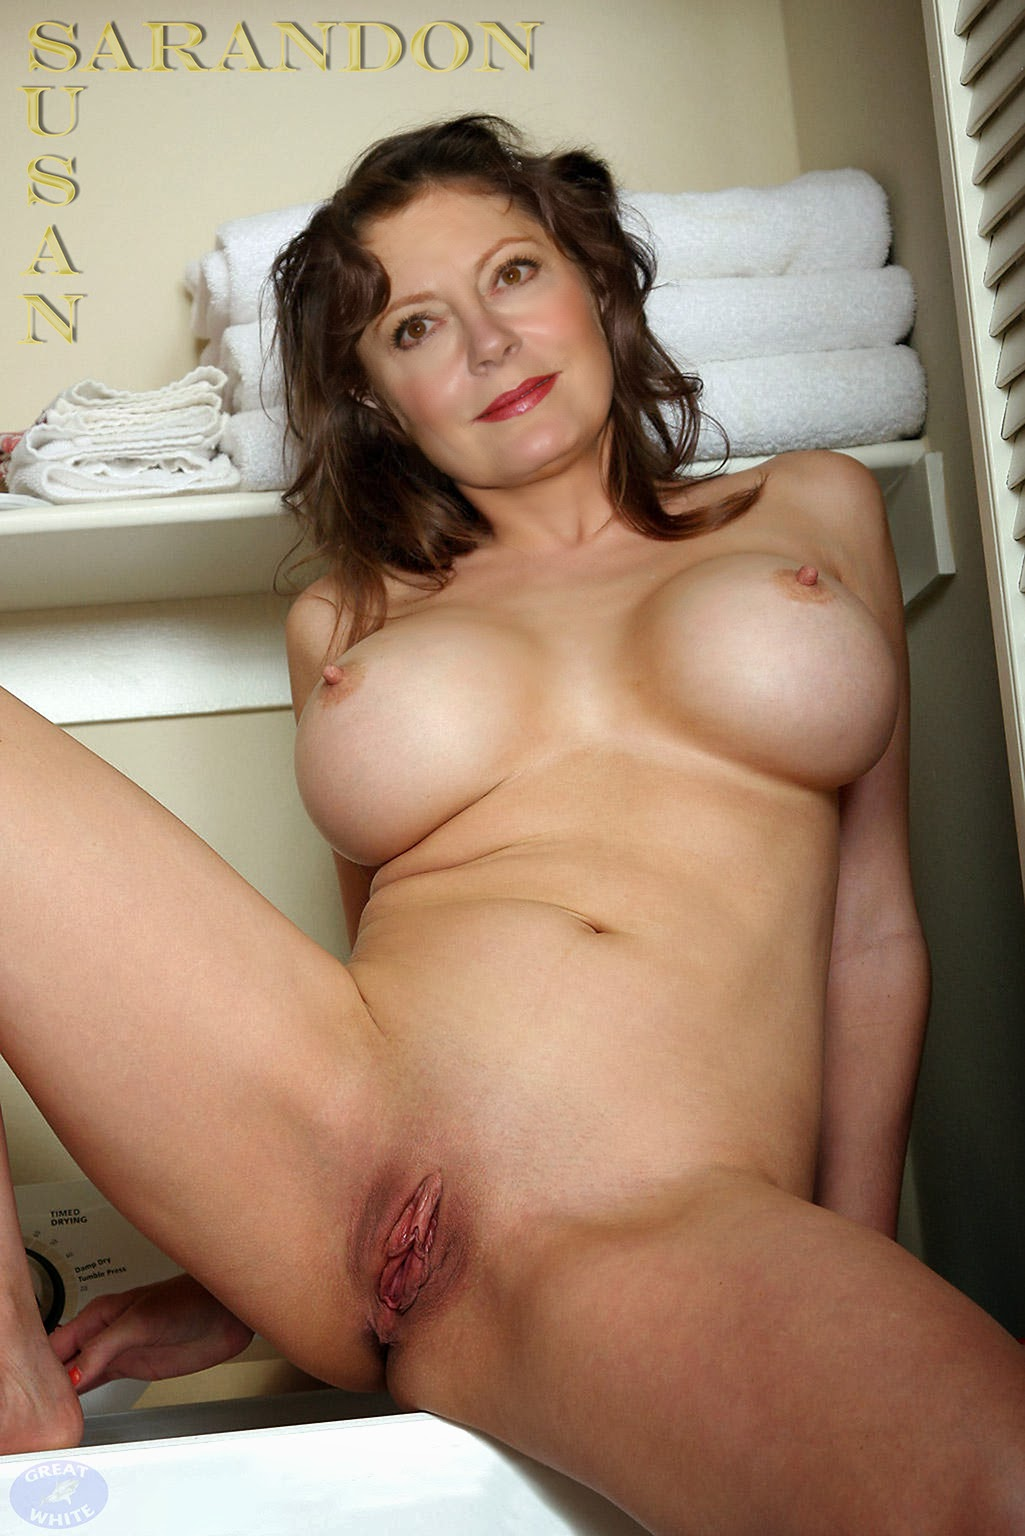 Susan Sarandon Fake Nudes